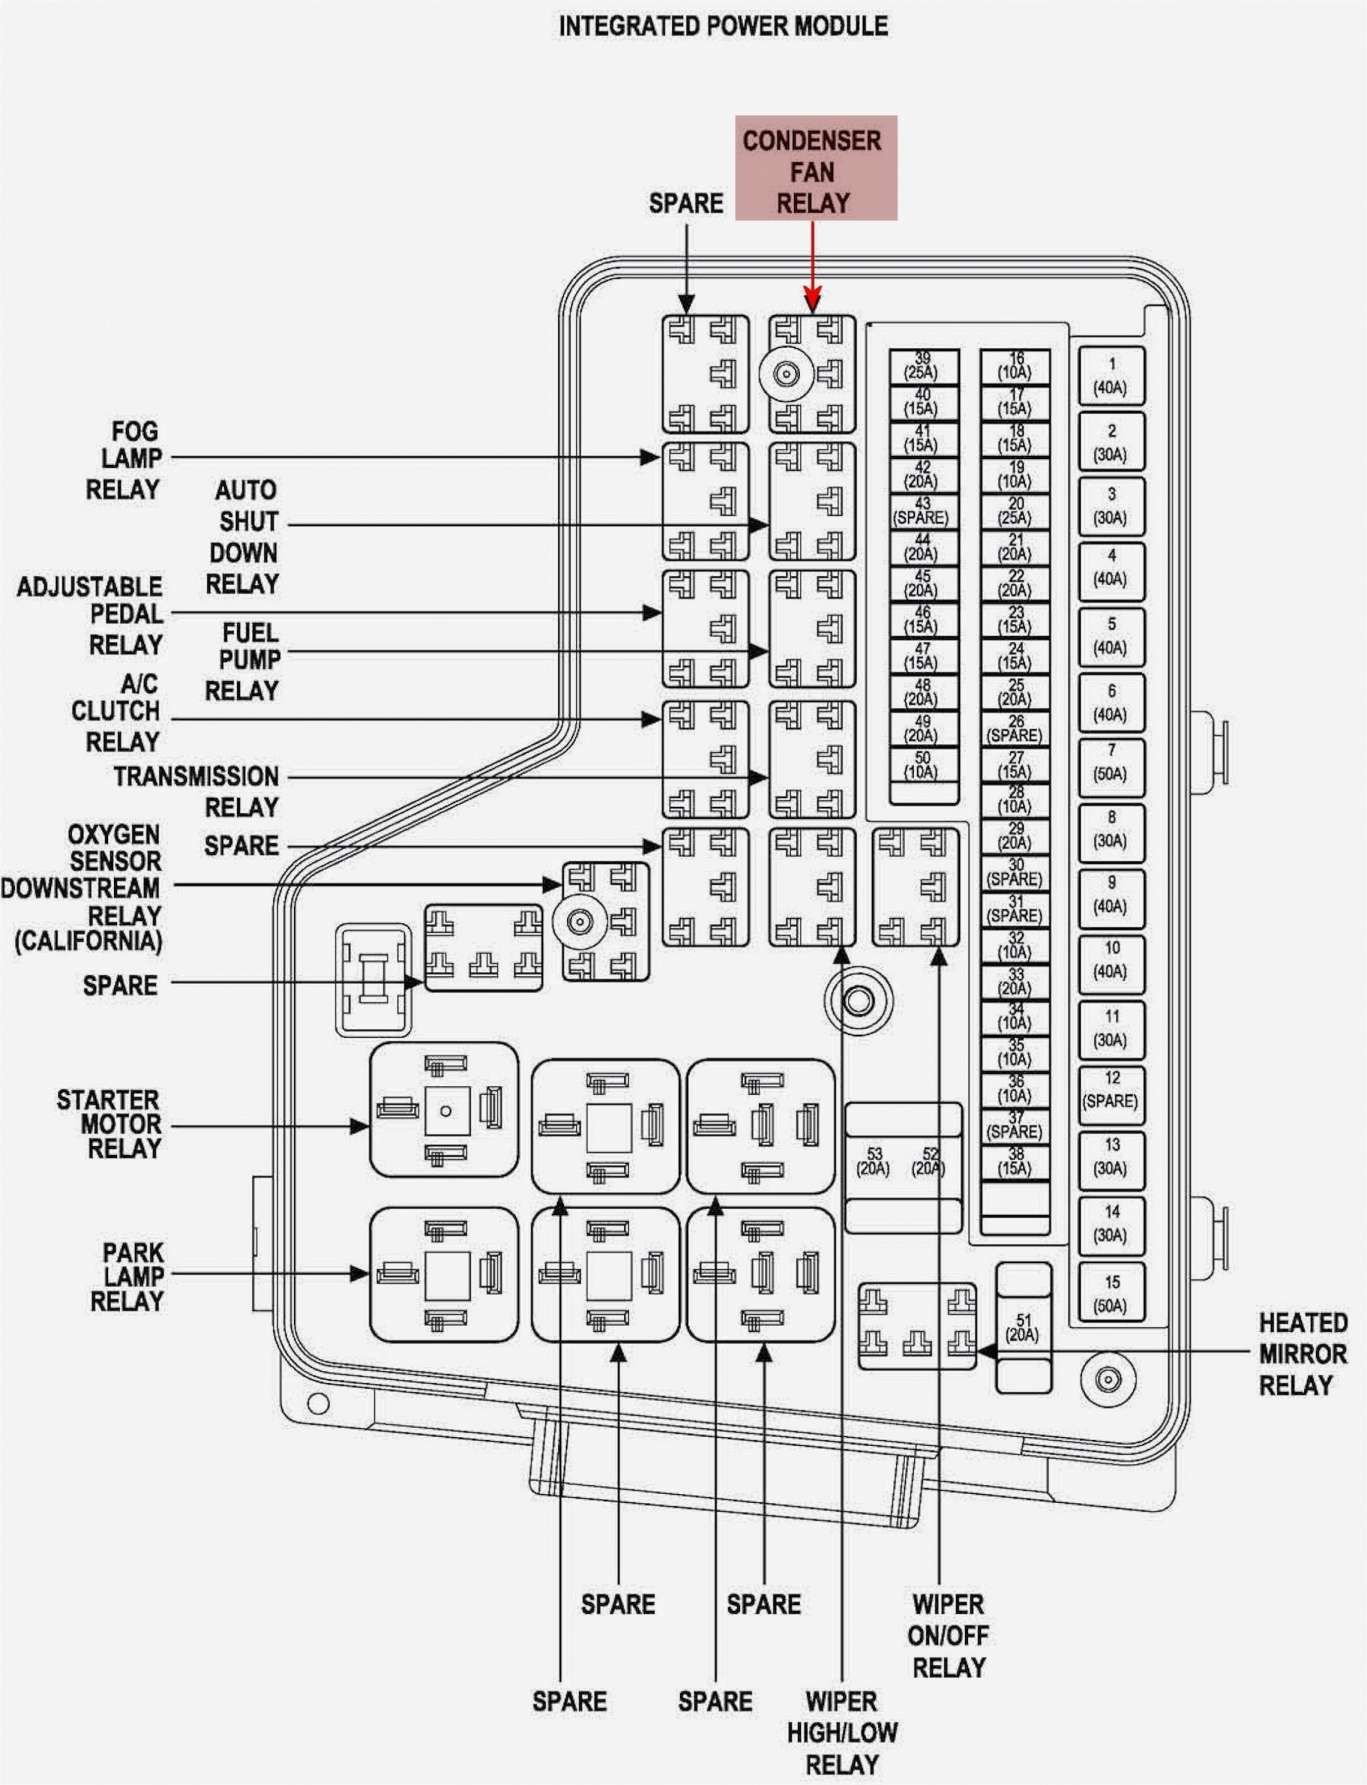 2004 dodge ram fuse box 2004 dodge ram fuse box diagram wiring diagram data  2004 dodge ram fuse box diagram